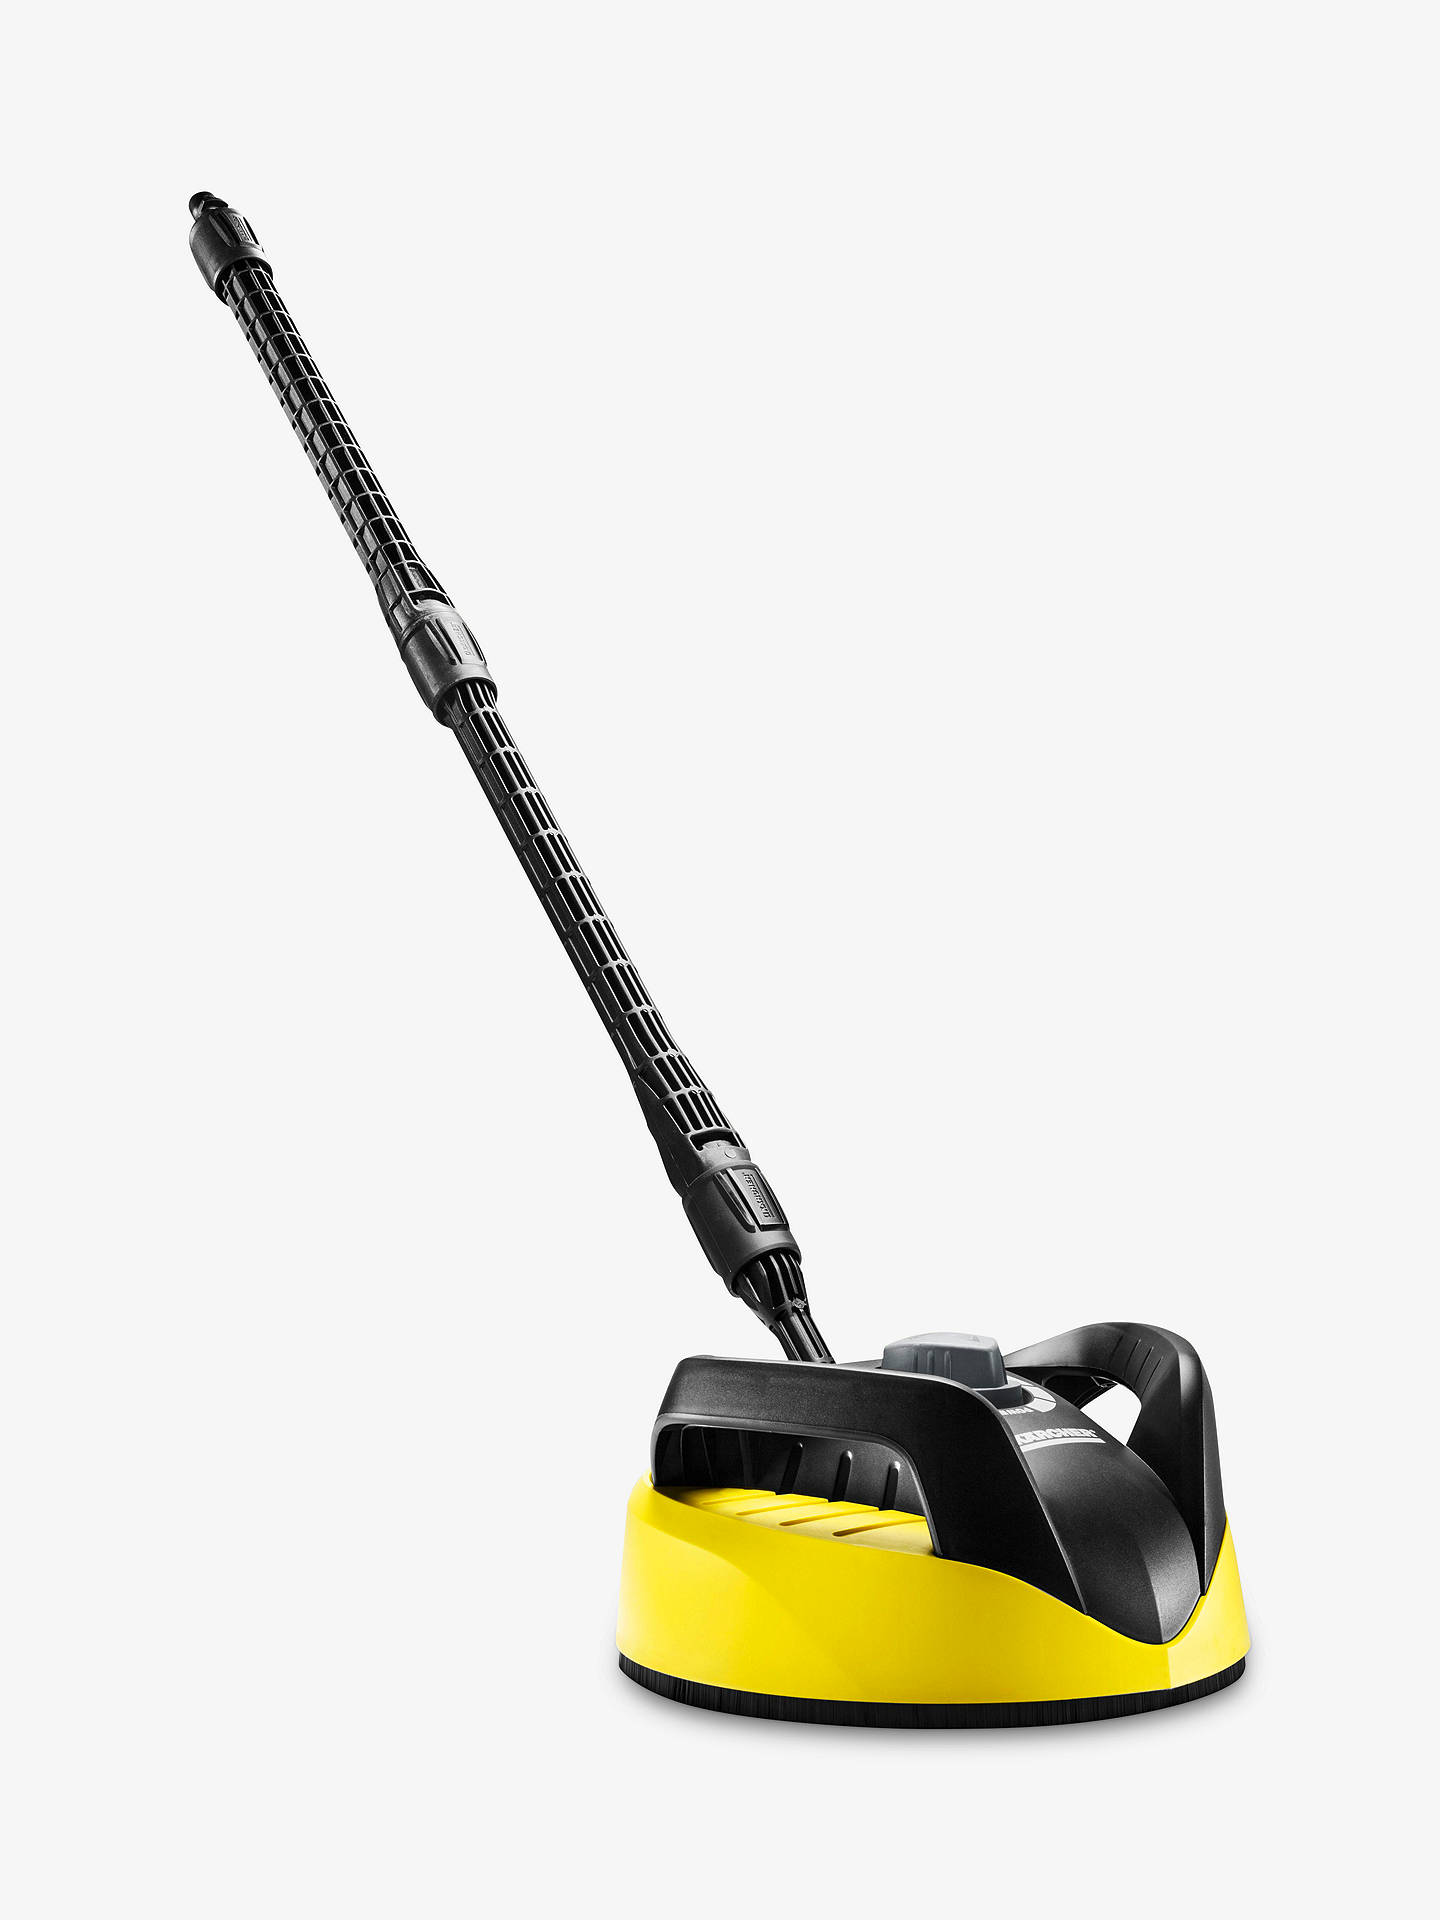 BuyKärcher T350 Patio Cleaner Online at johnlewis.com